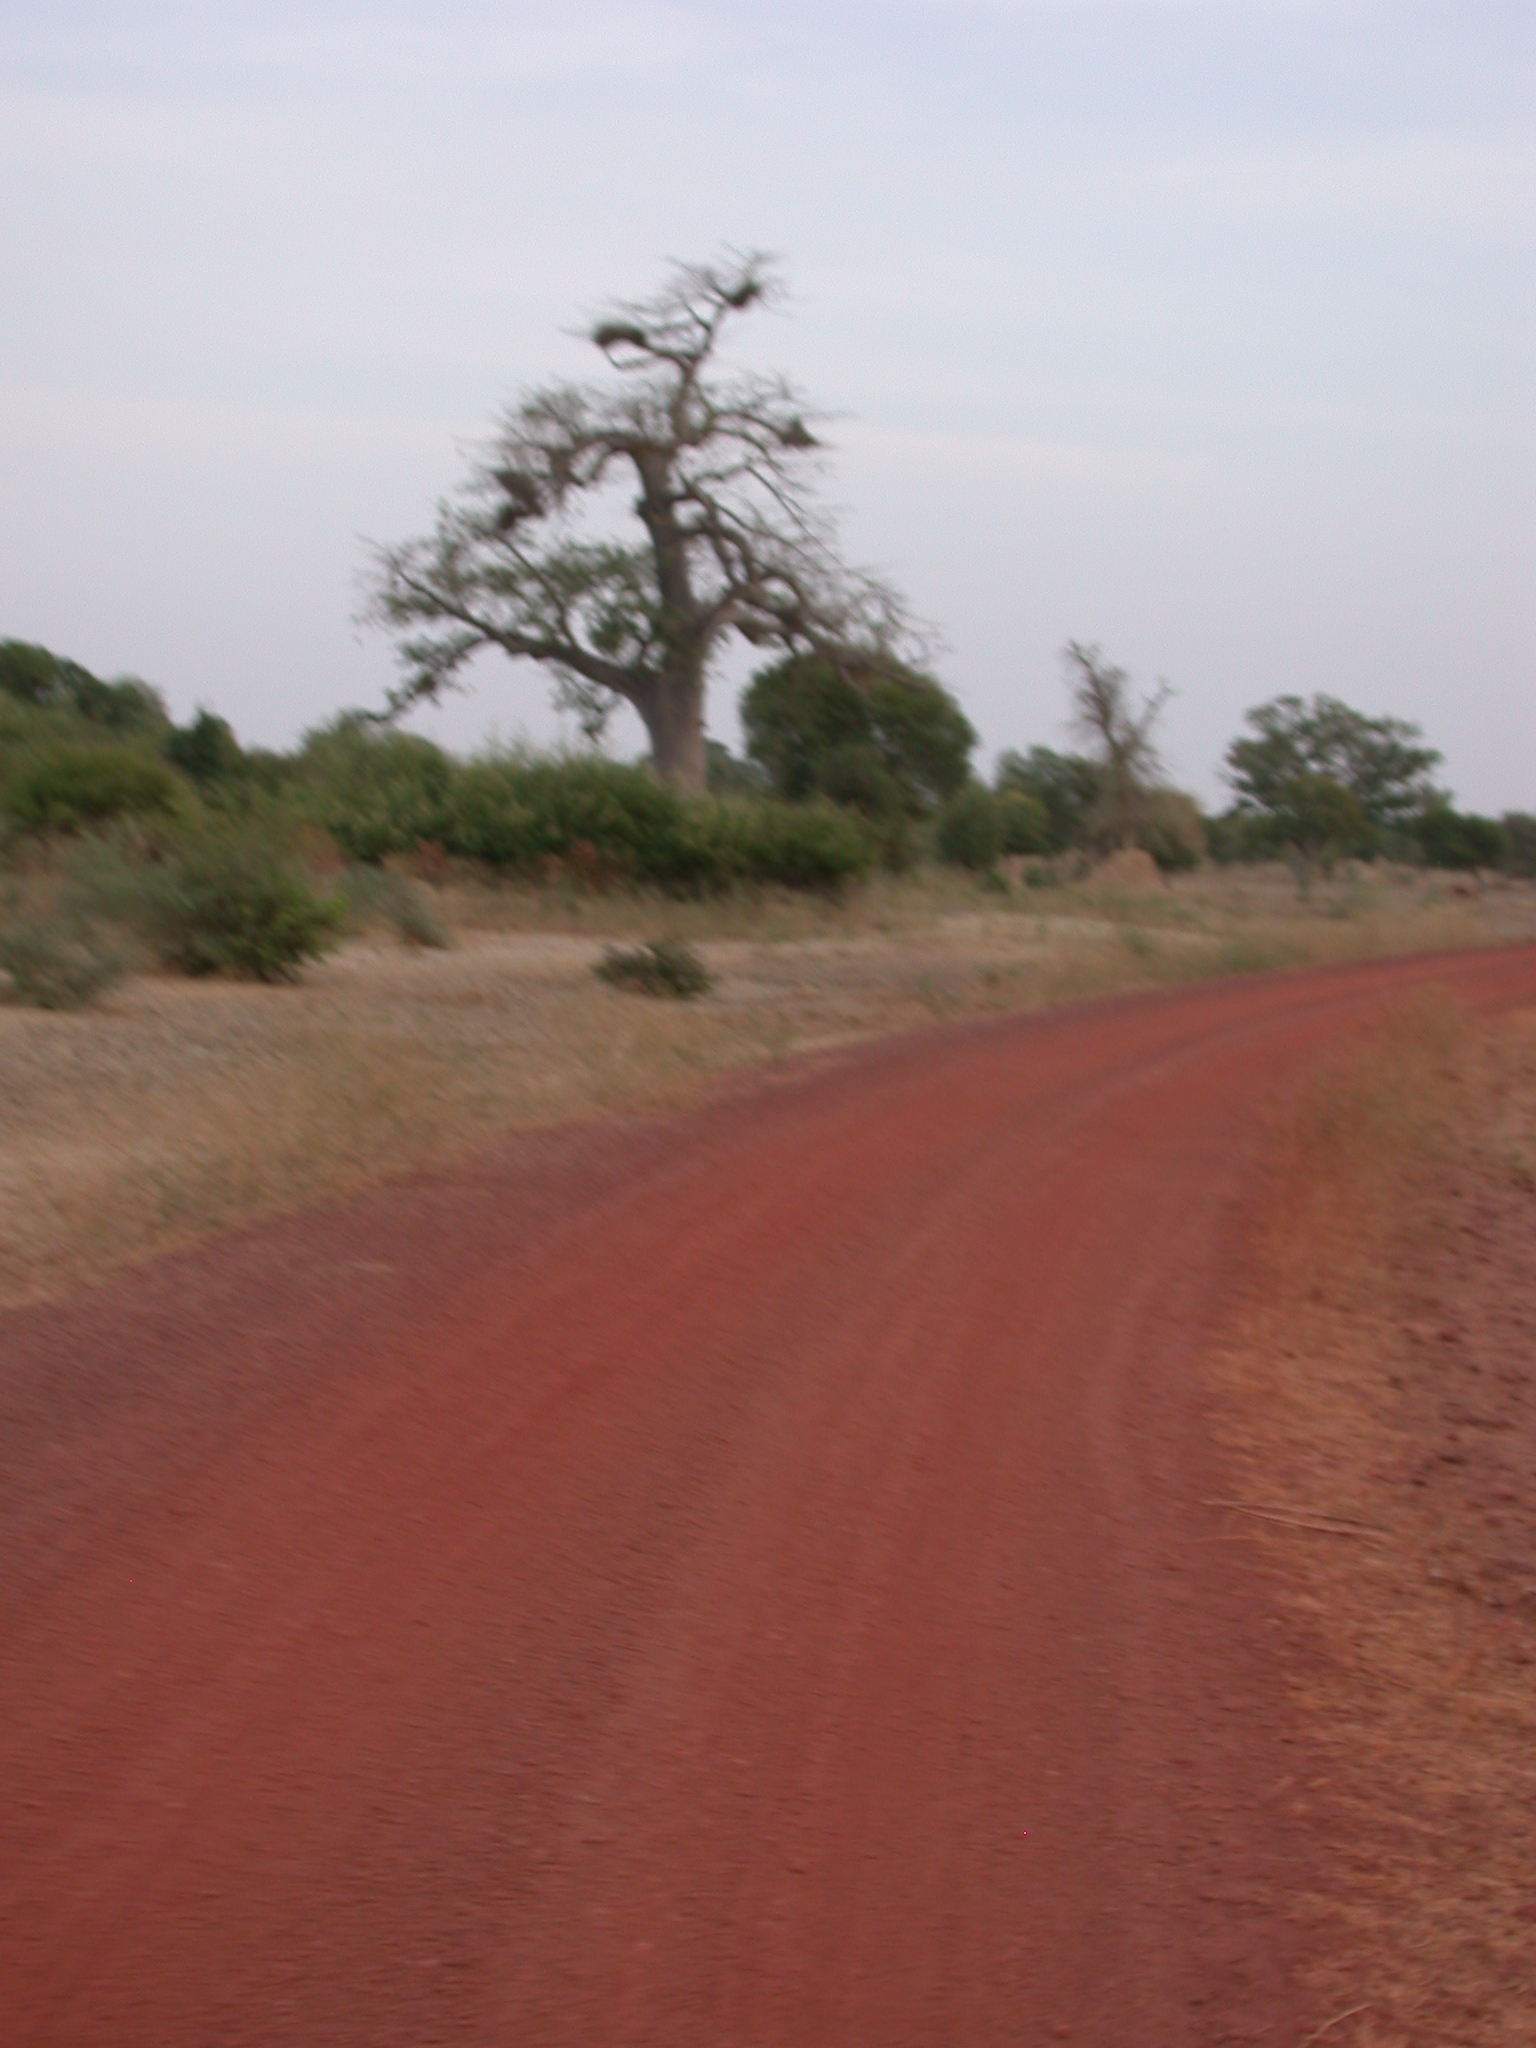 Baobab and Red Soil on Road From Massina to Say, Mali